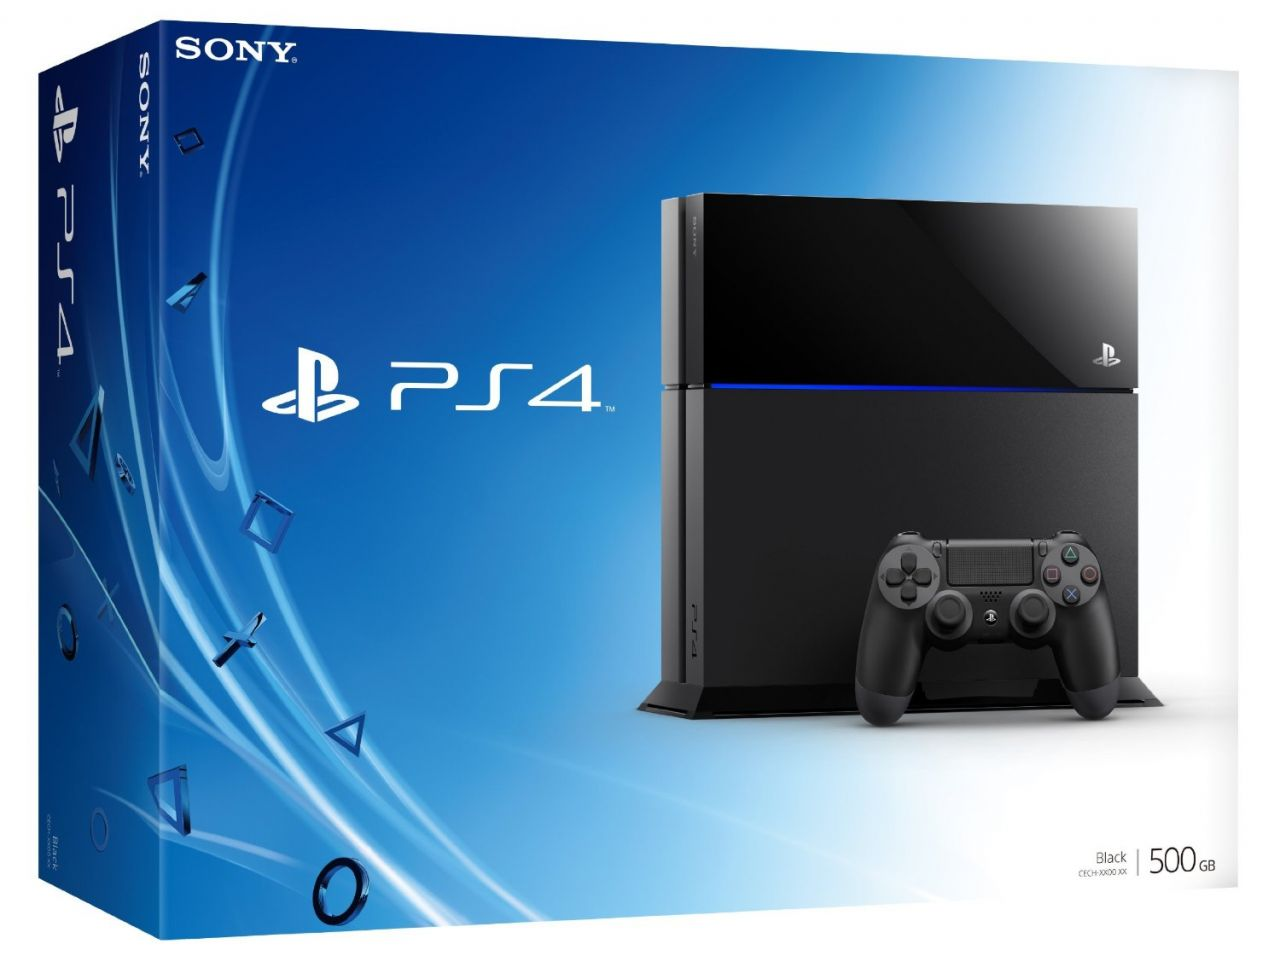 PS4 500go + Drive Club + FIFA 15 + PS PLUS 1an = 509.99 E